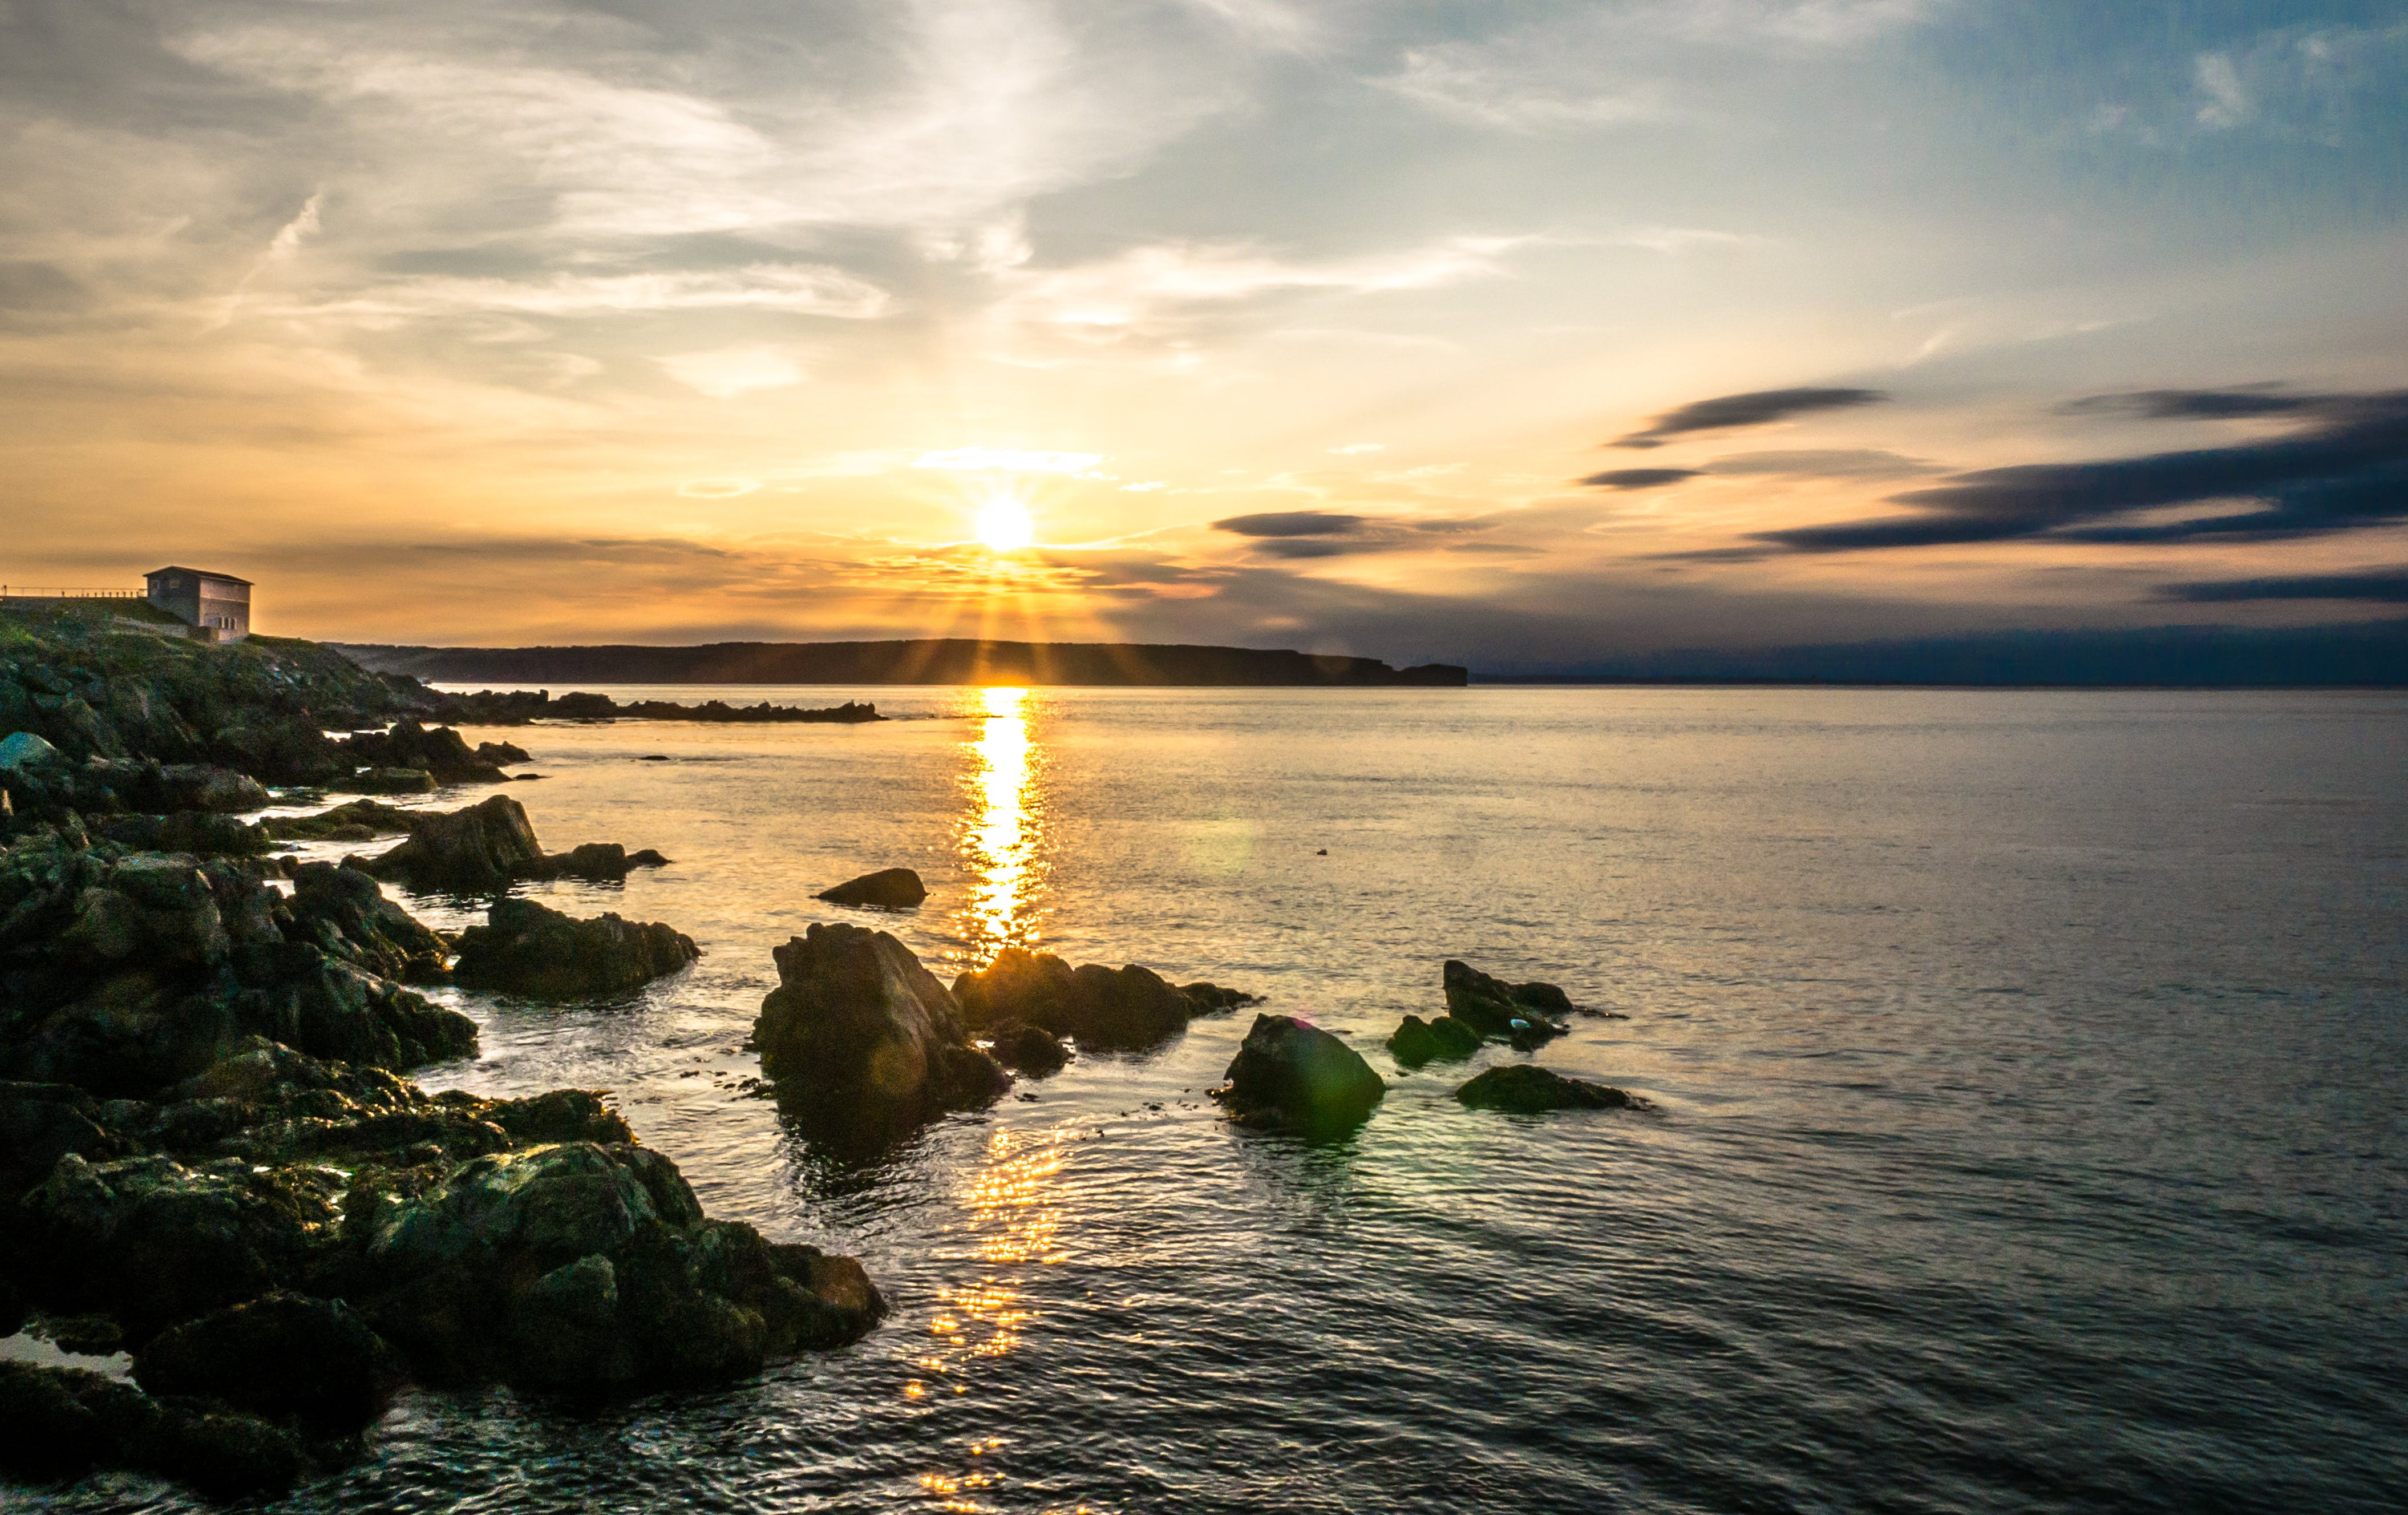 Rock Formations Beside Body of Water during Golden Hour